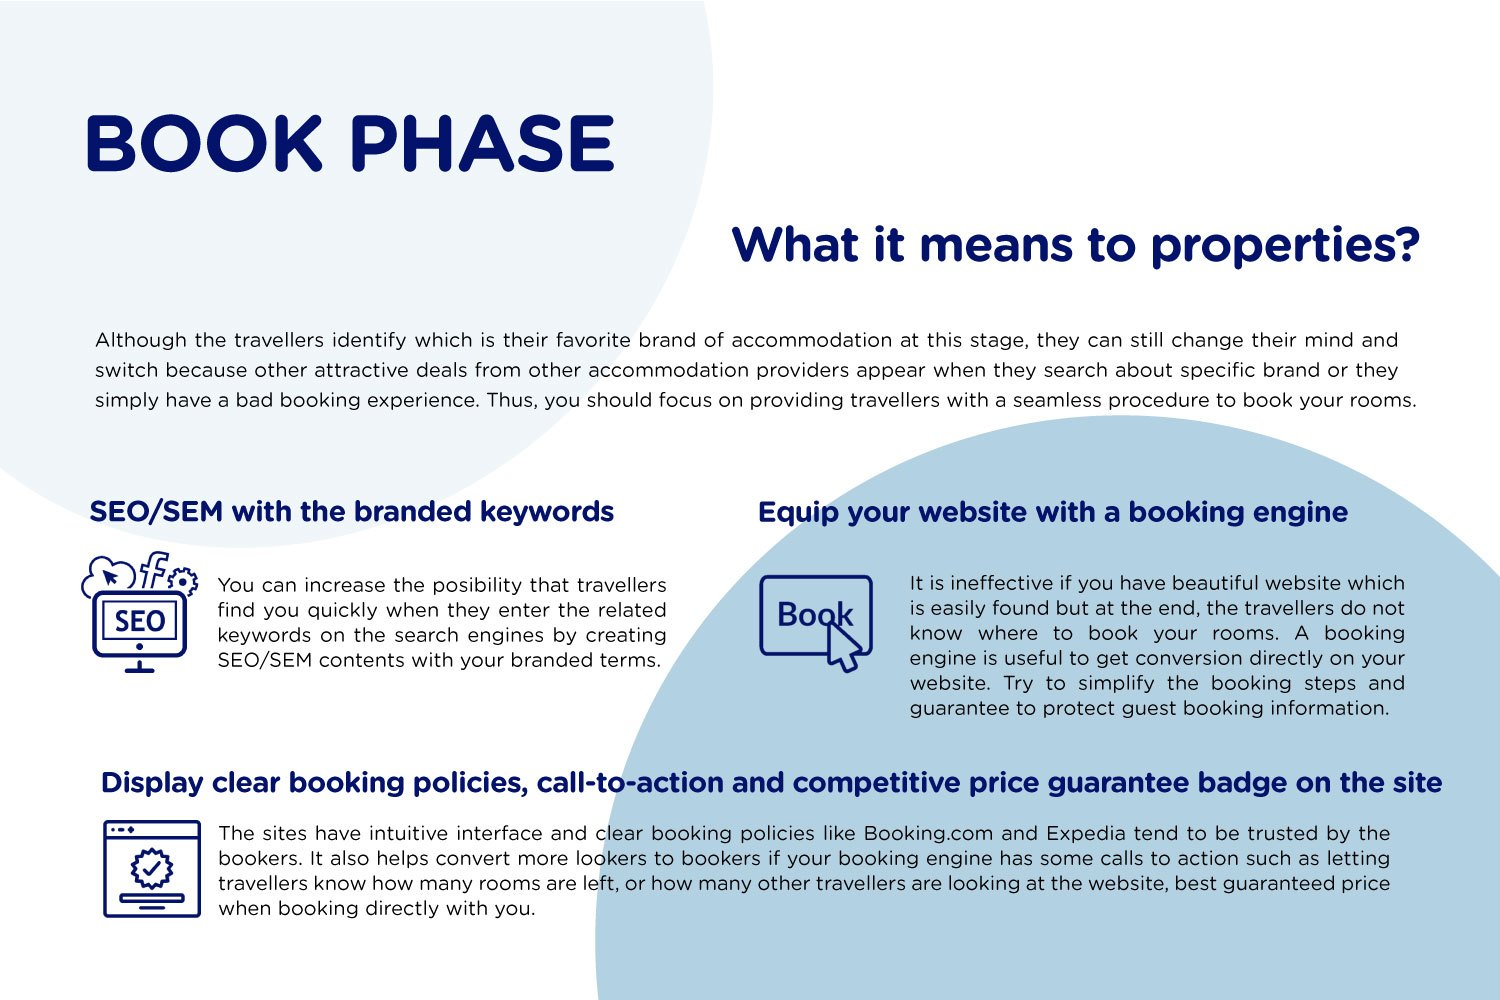 What Book Phase Means To Properties